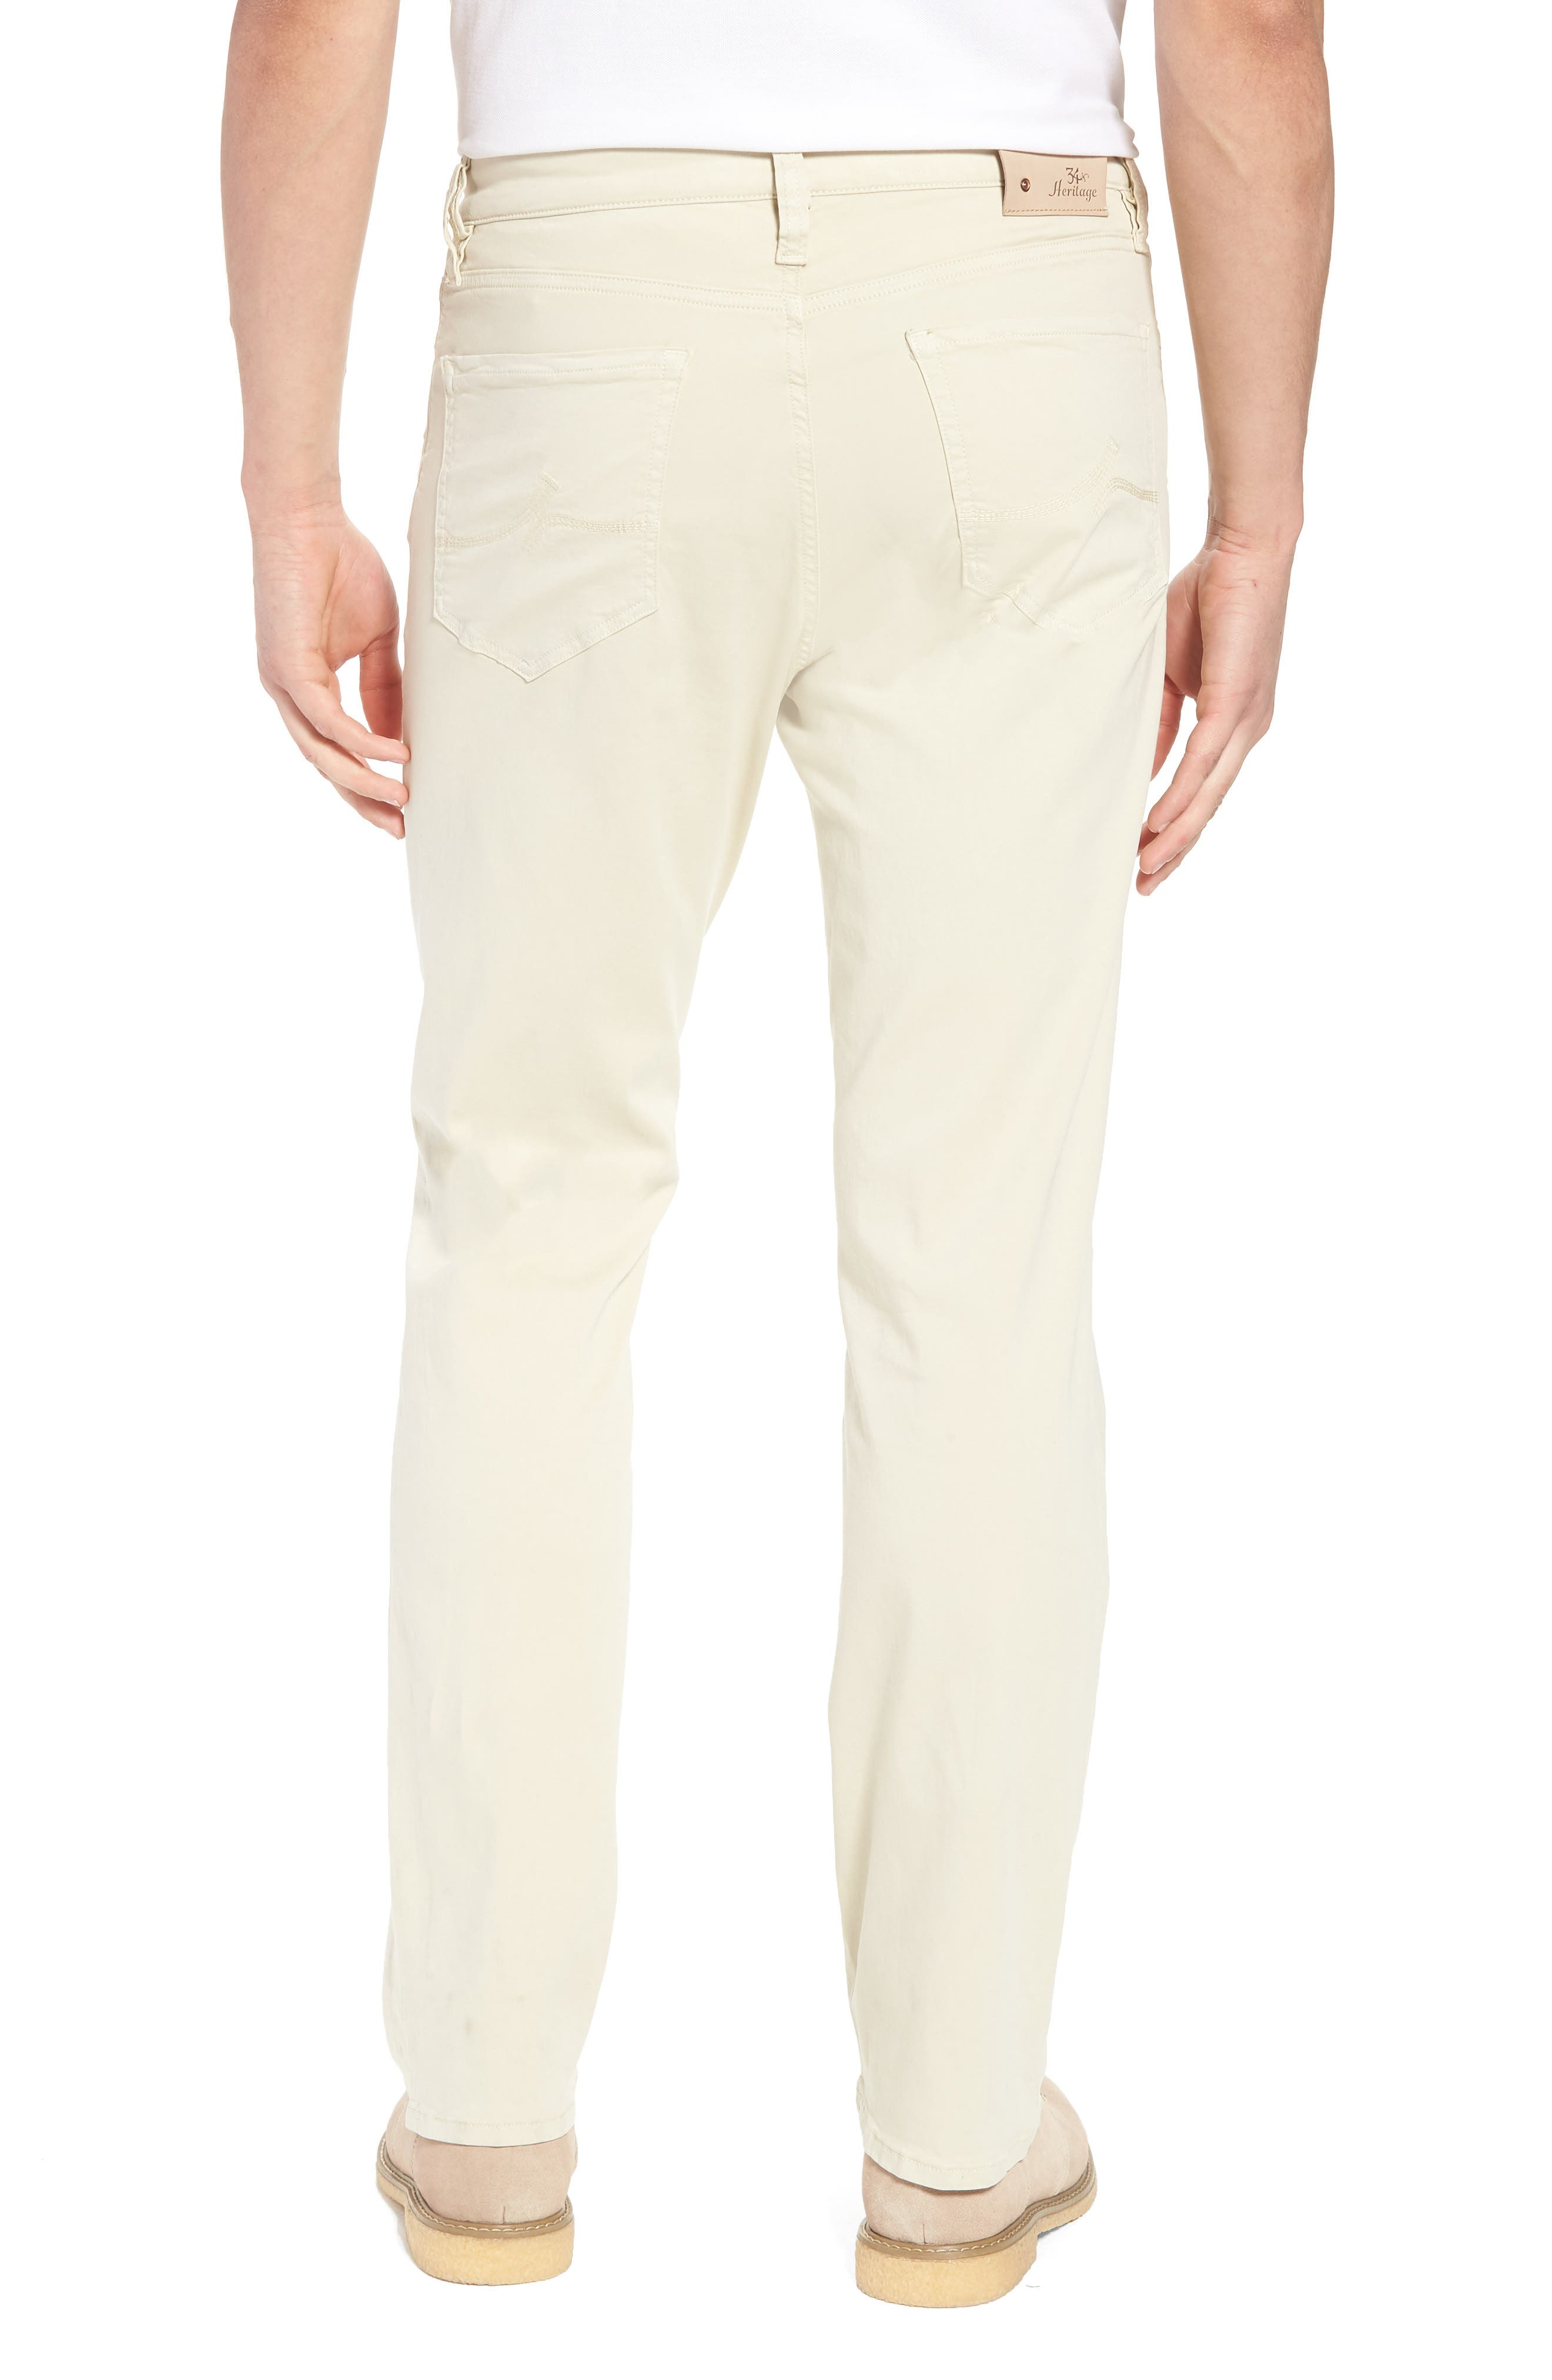 Charisma Relaxed Fit Jeans,                             Alternate thumbnail 2, color,                             BONE TWILL